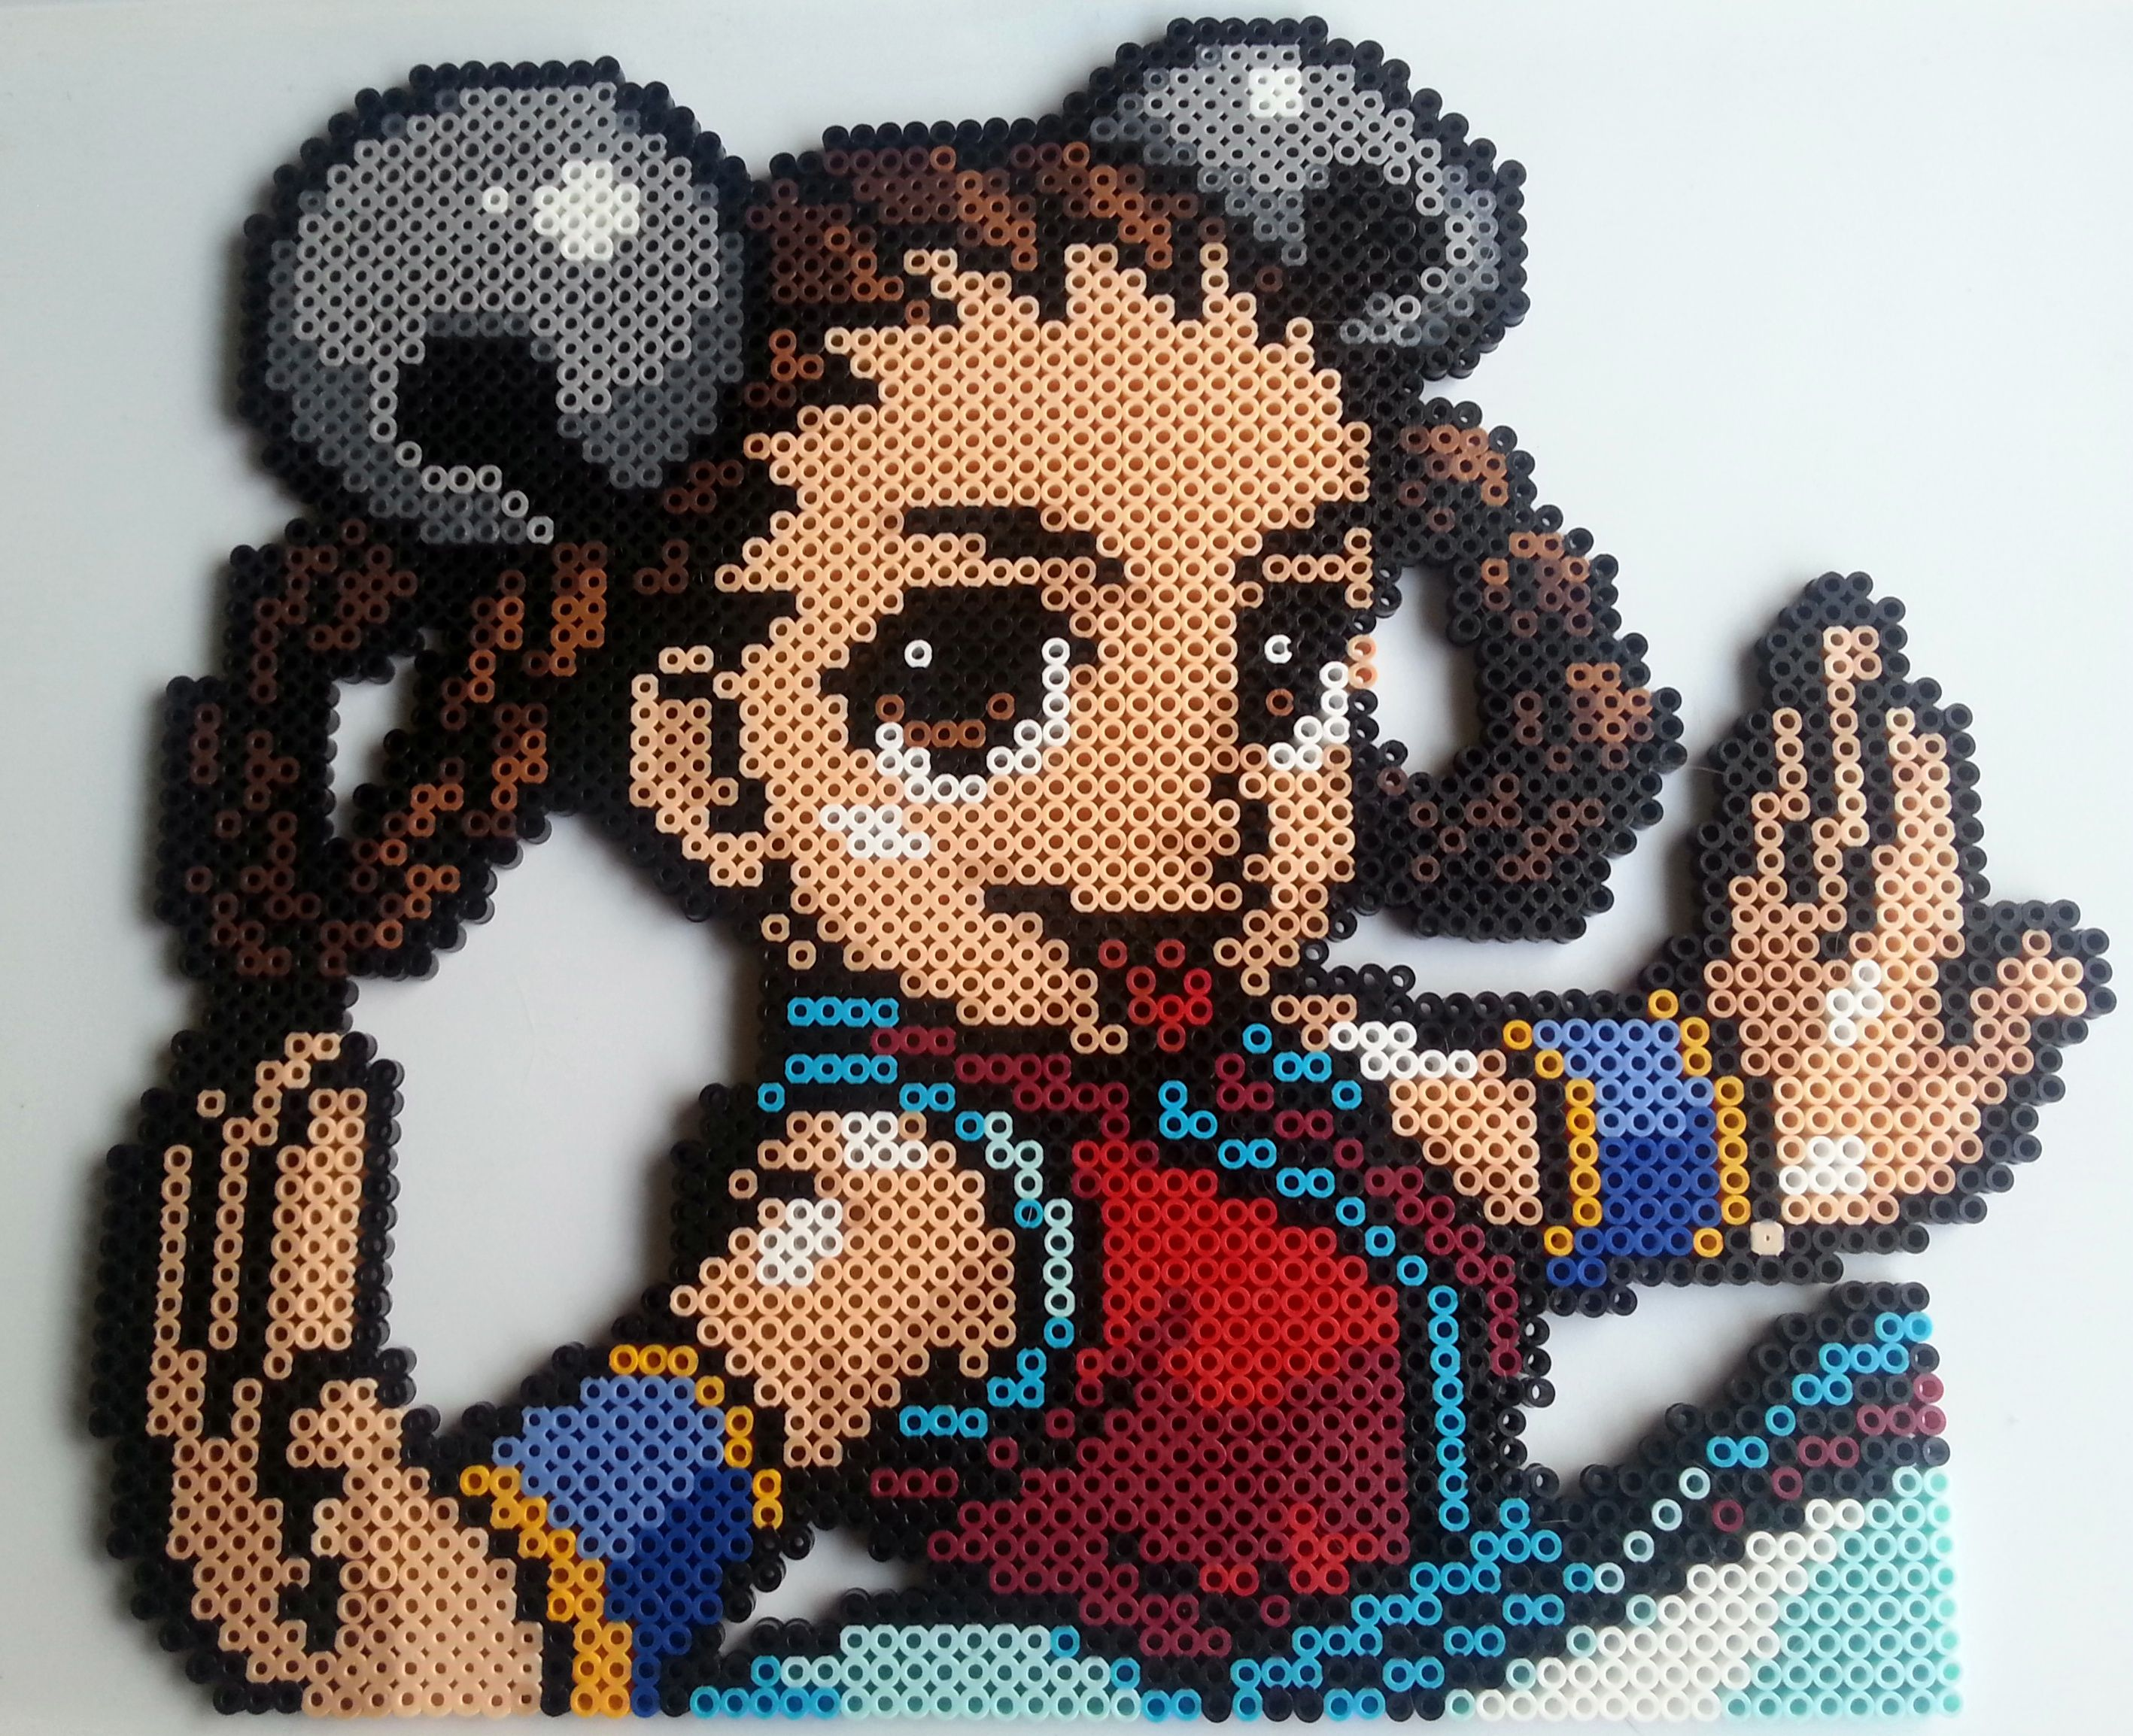 Large Xiang-Fei (King of Fighters) Perler beads by Nerd Melt